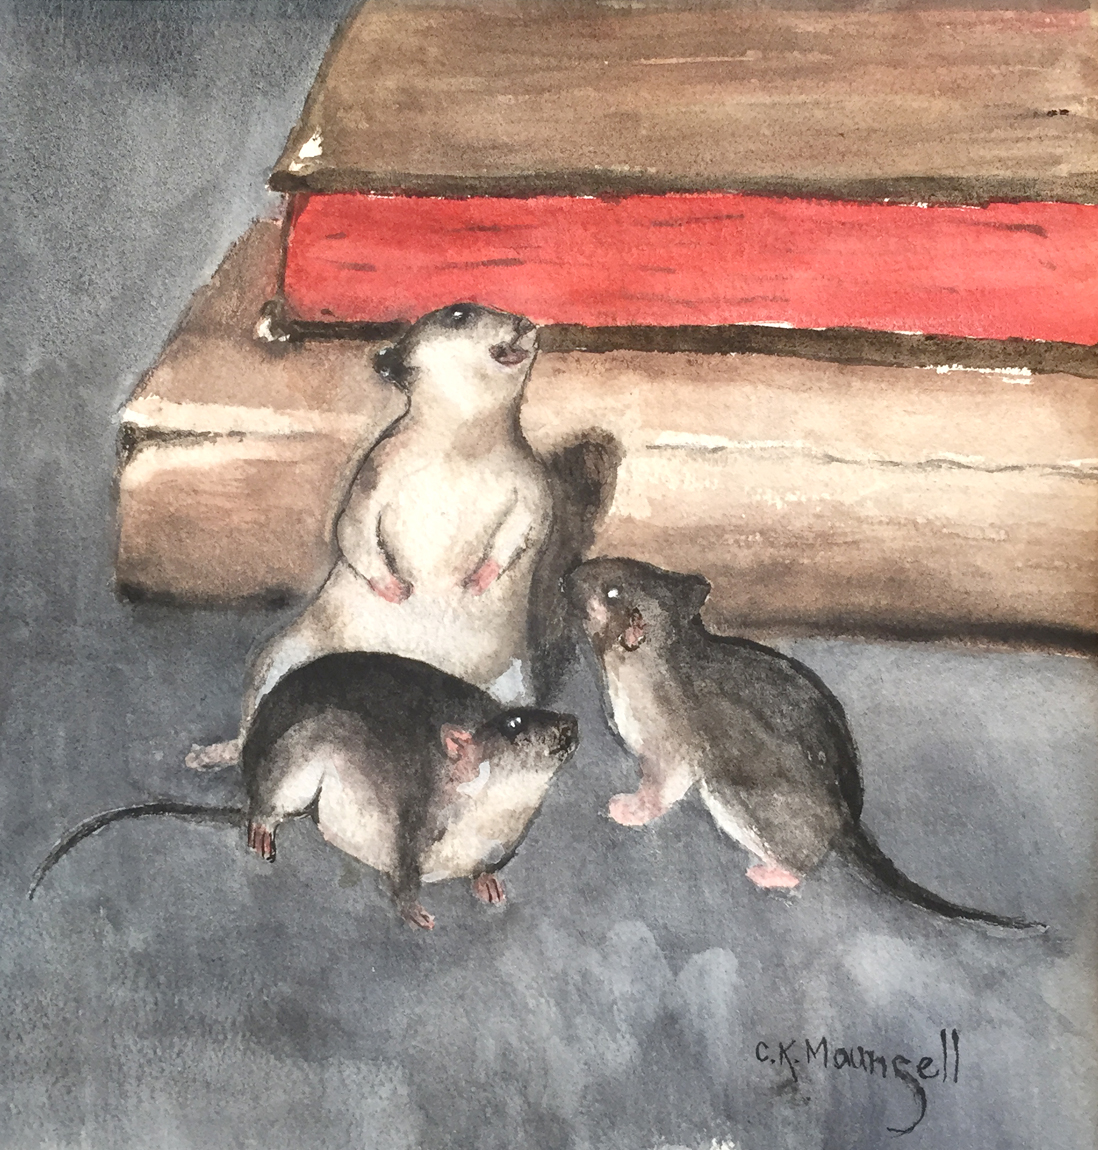 Three Rats   Kelly Maunsell